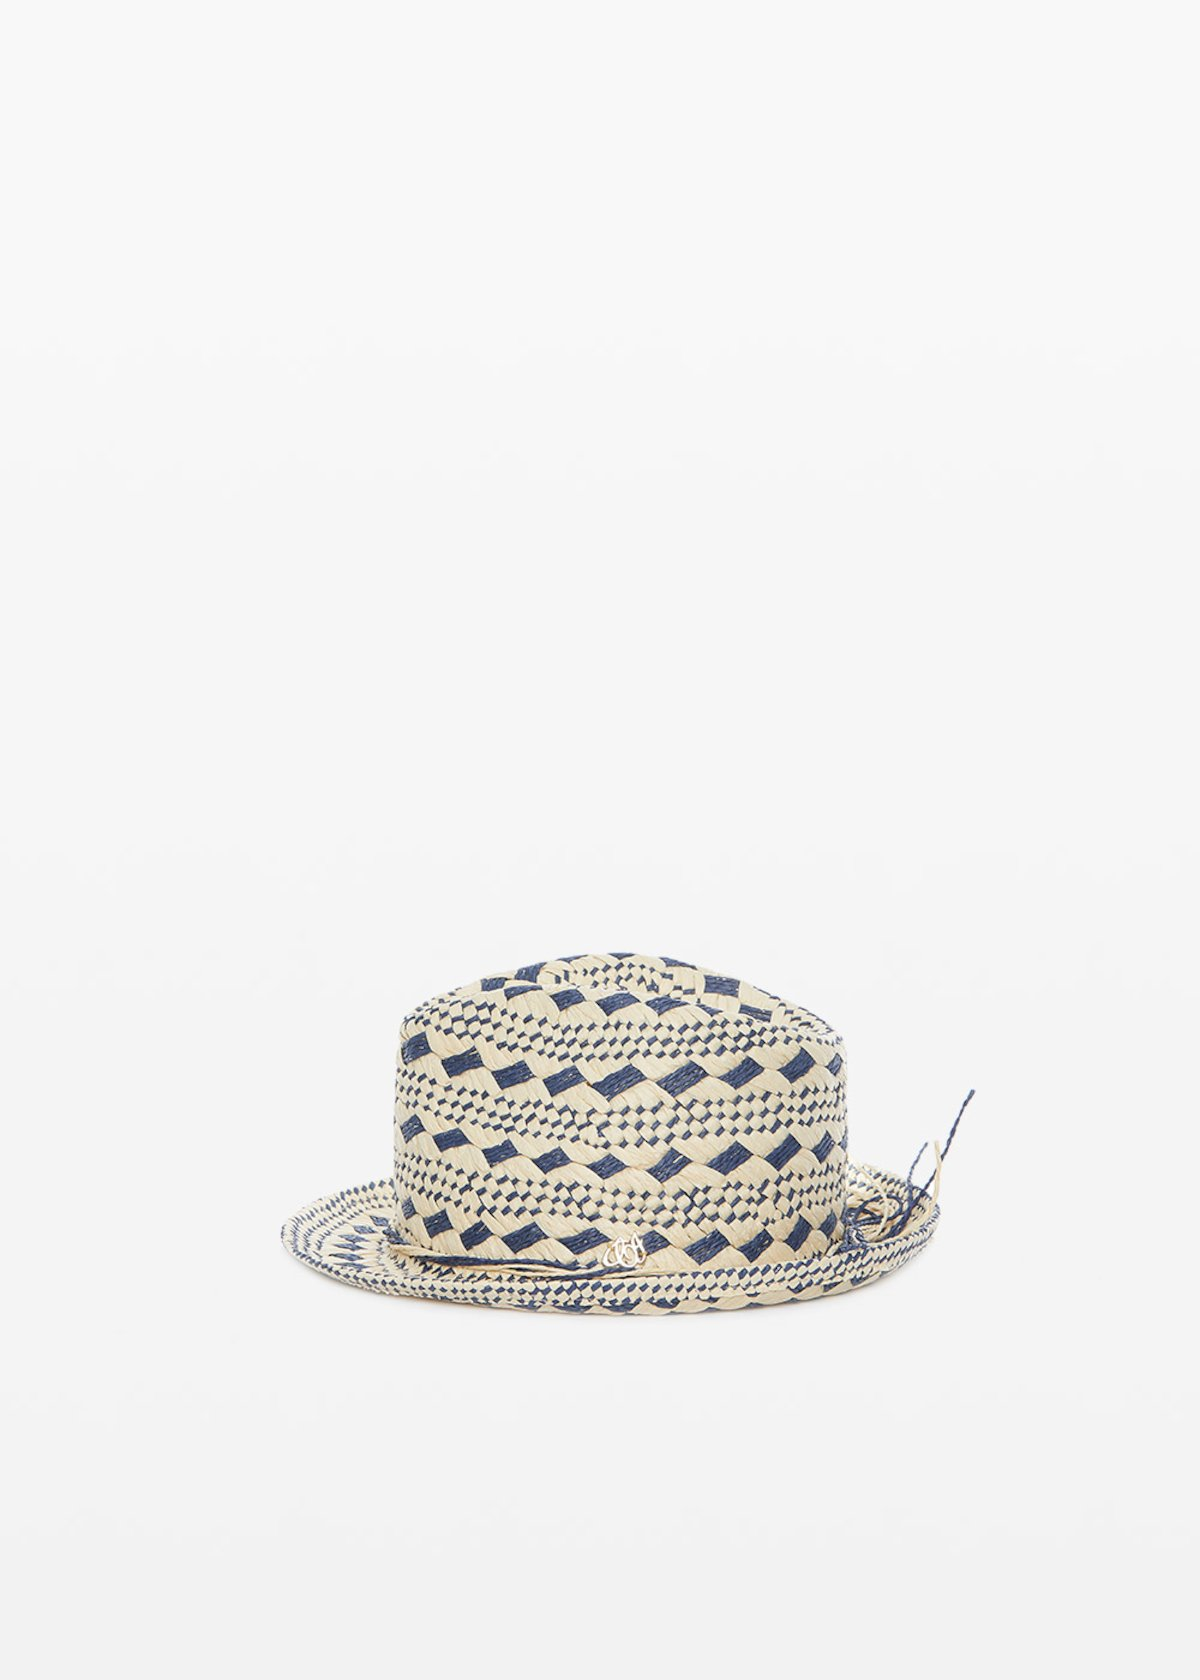 Cassis hat in natural color straw with avion rhombus - Light Beige / Avion Fantasia - Woman